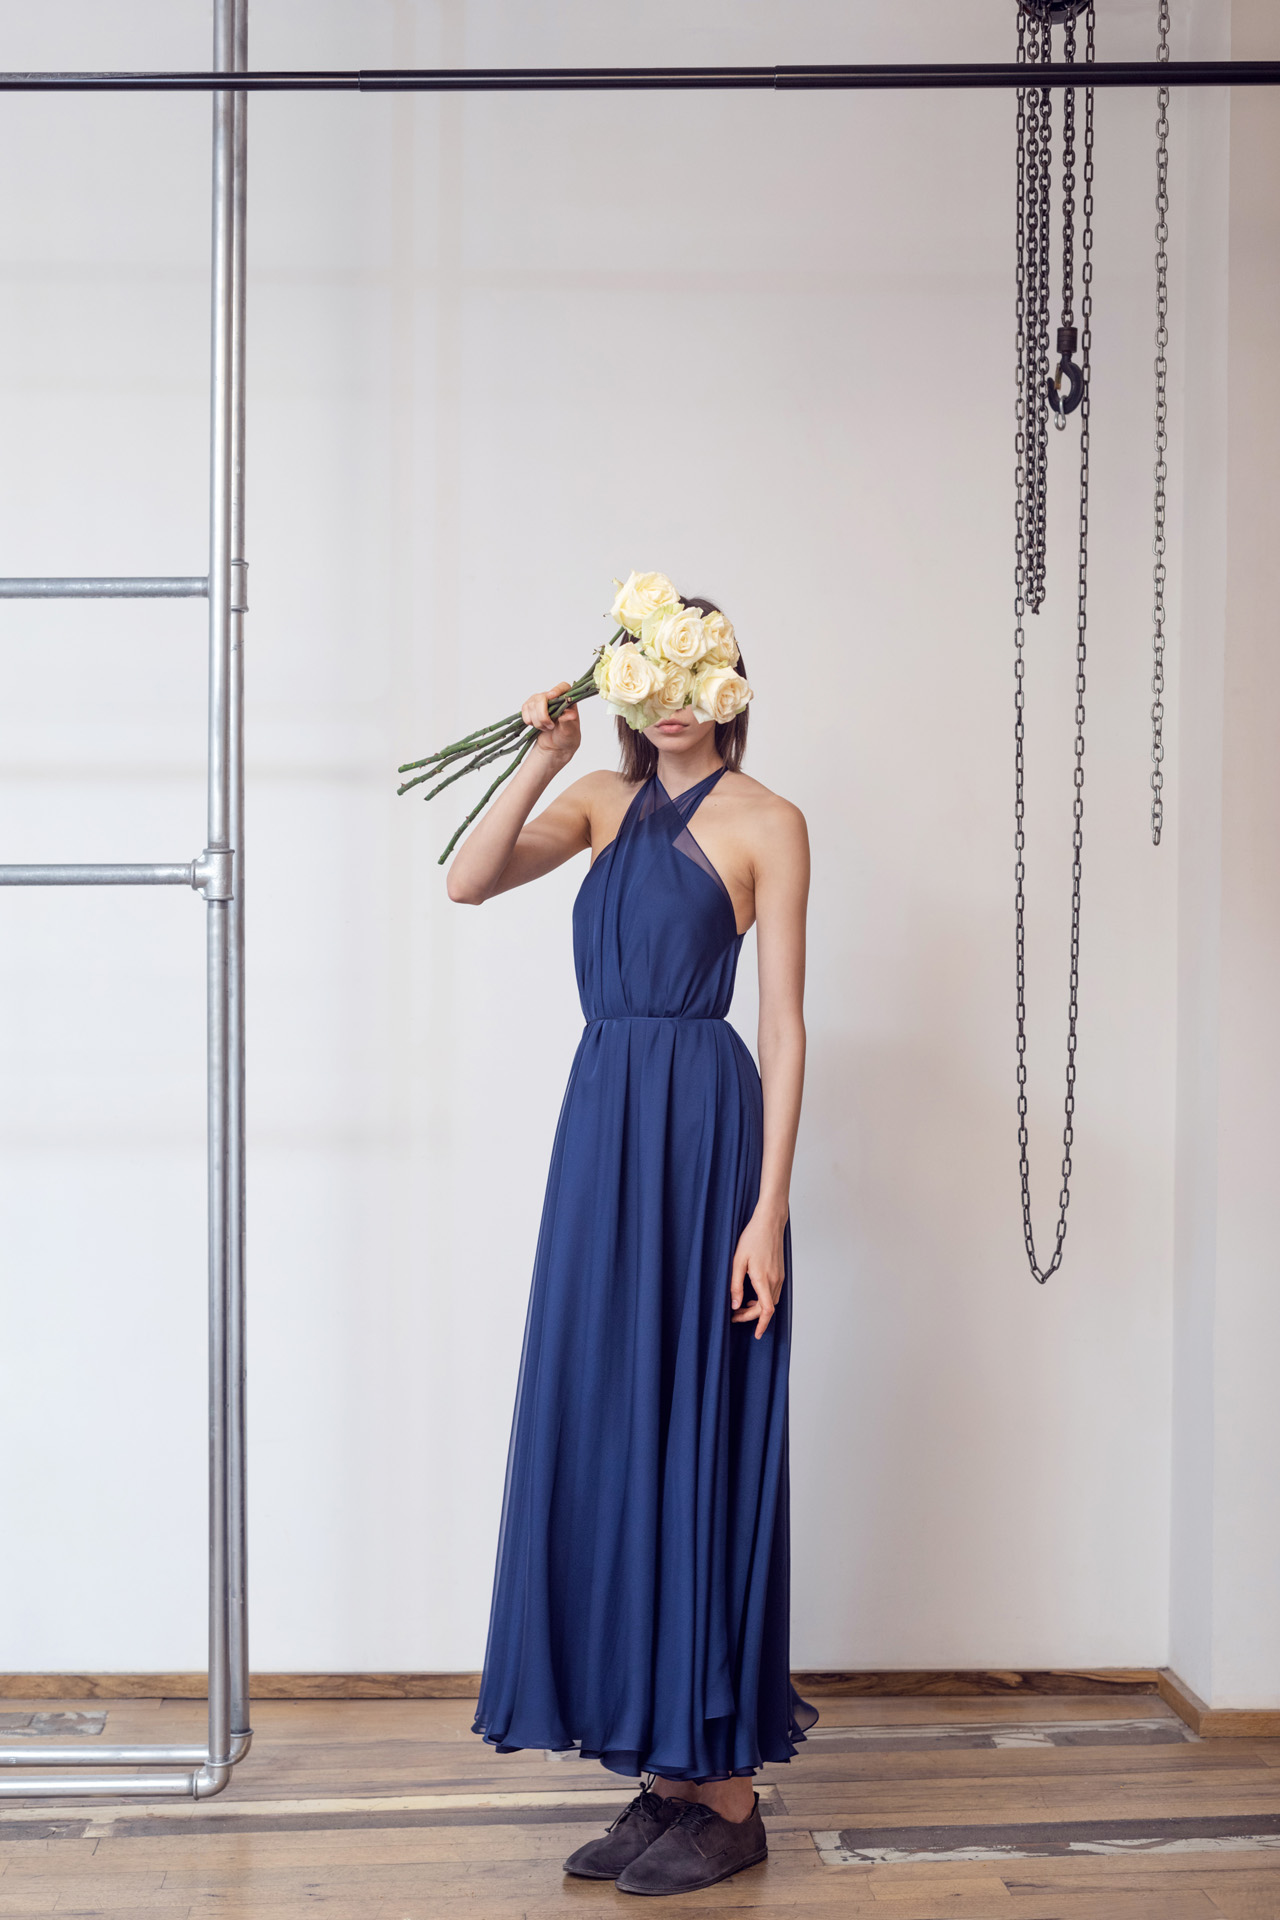 Lara Khoury | LK Stripped | Capsule 1-2019 | 14-Navy Blue Muslin Halter Dress 1.jpg